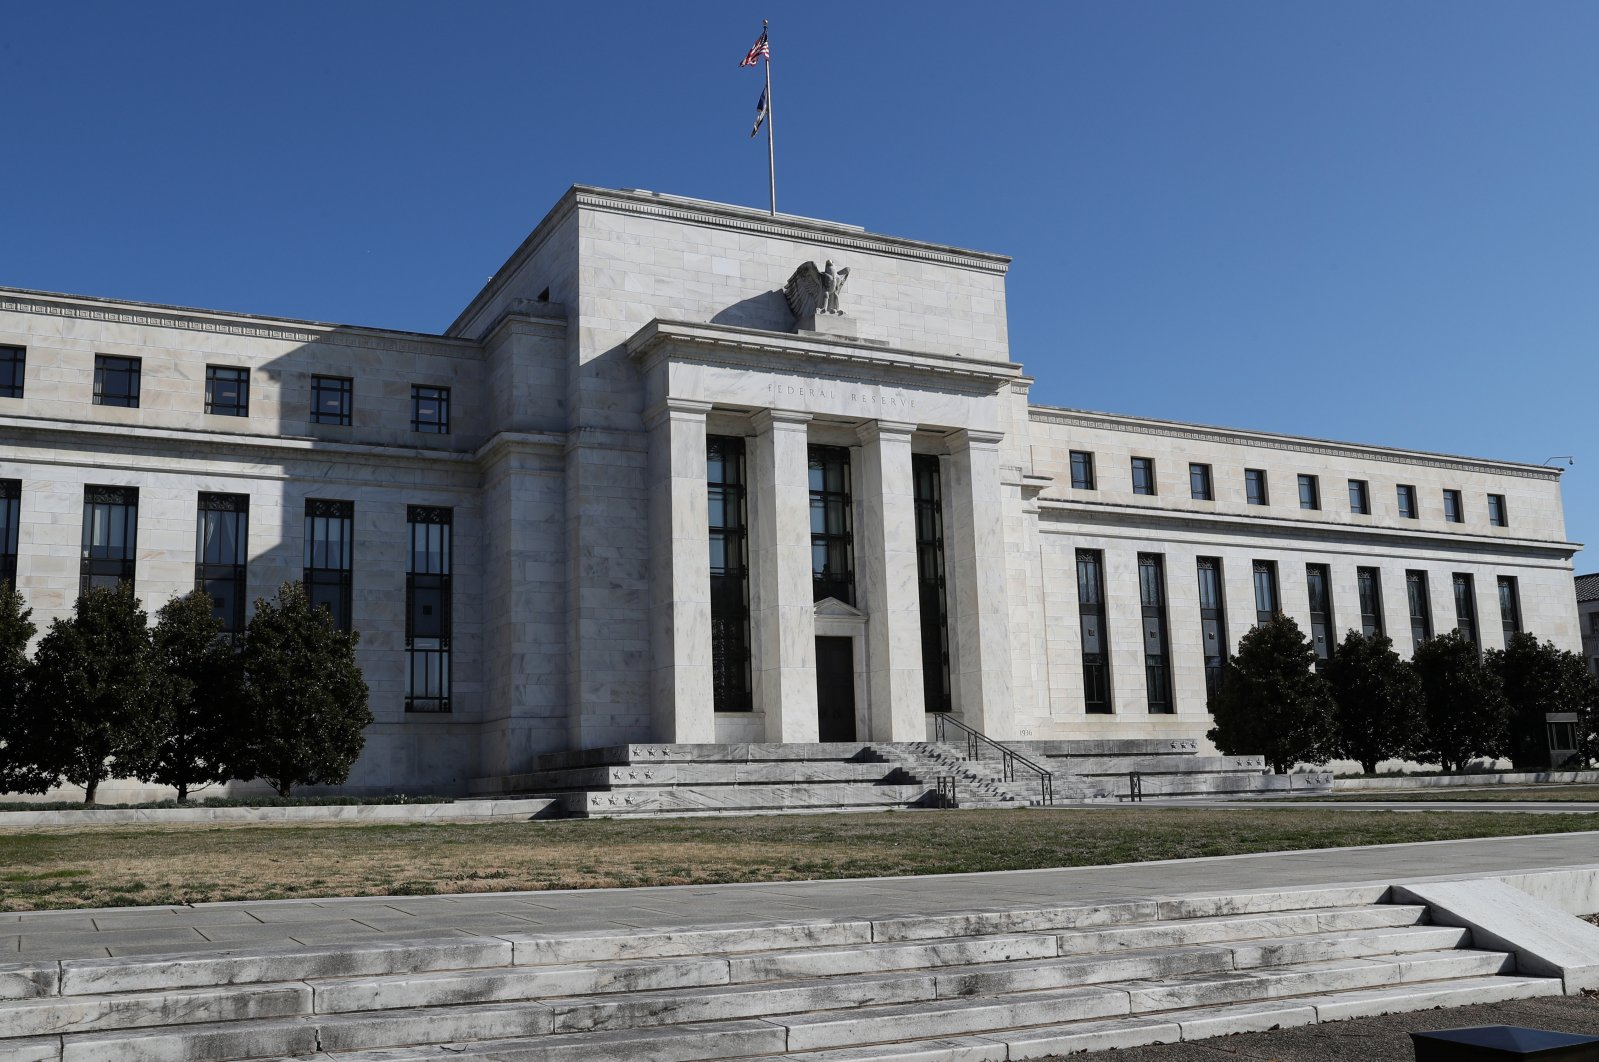 Federal Reserve Board building on Constitution Avenue is pictured in Washington, U.S., March 19, 2019. (Reuters Photo)